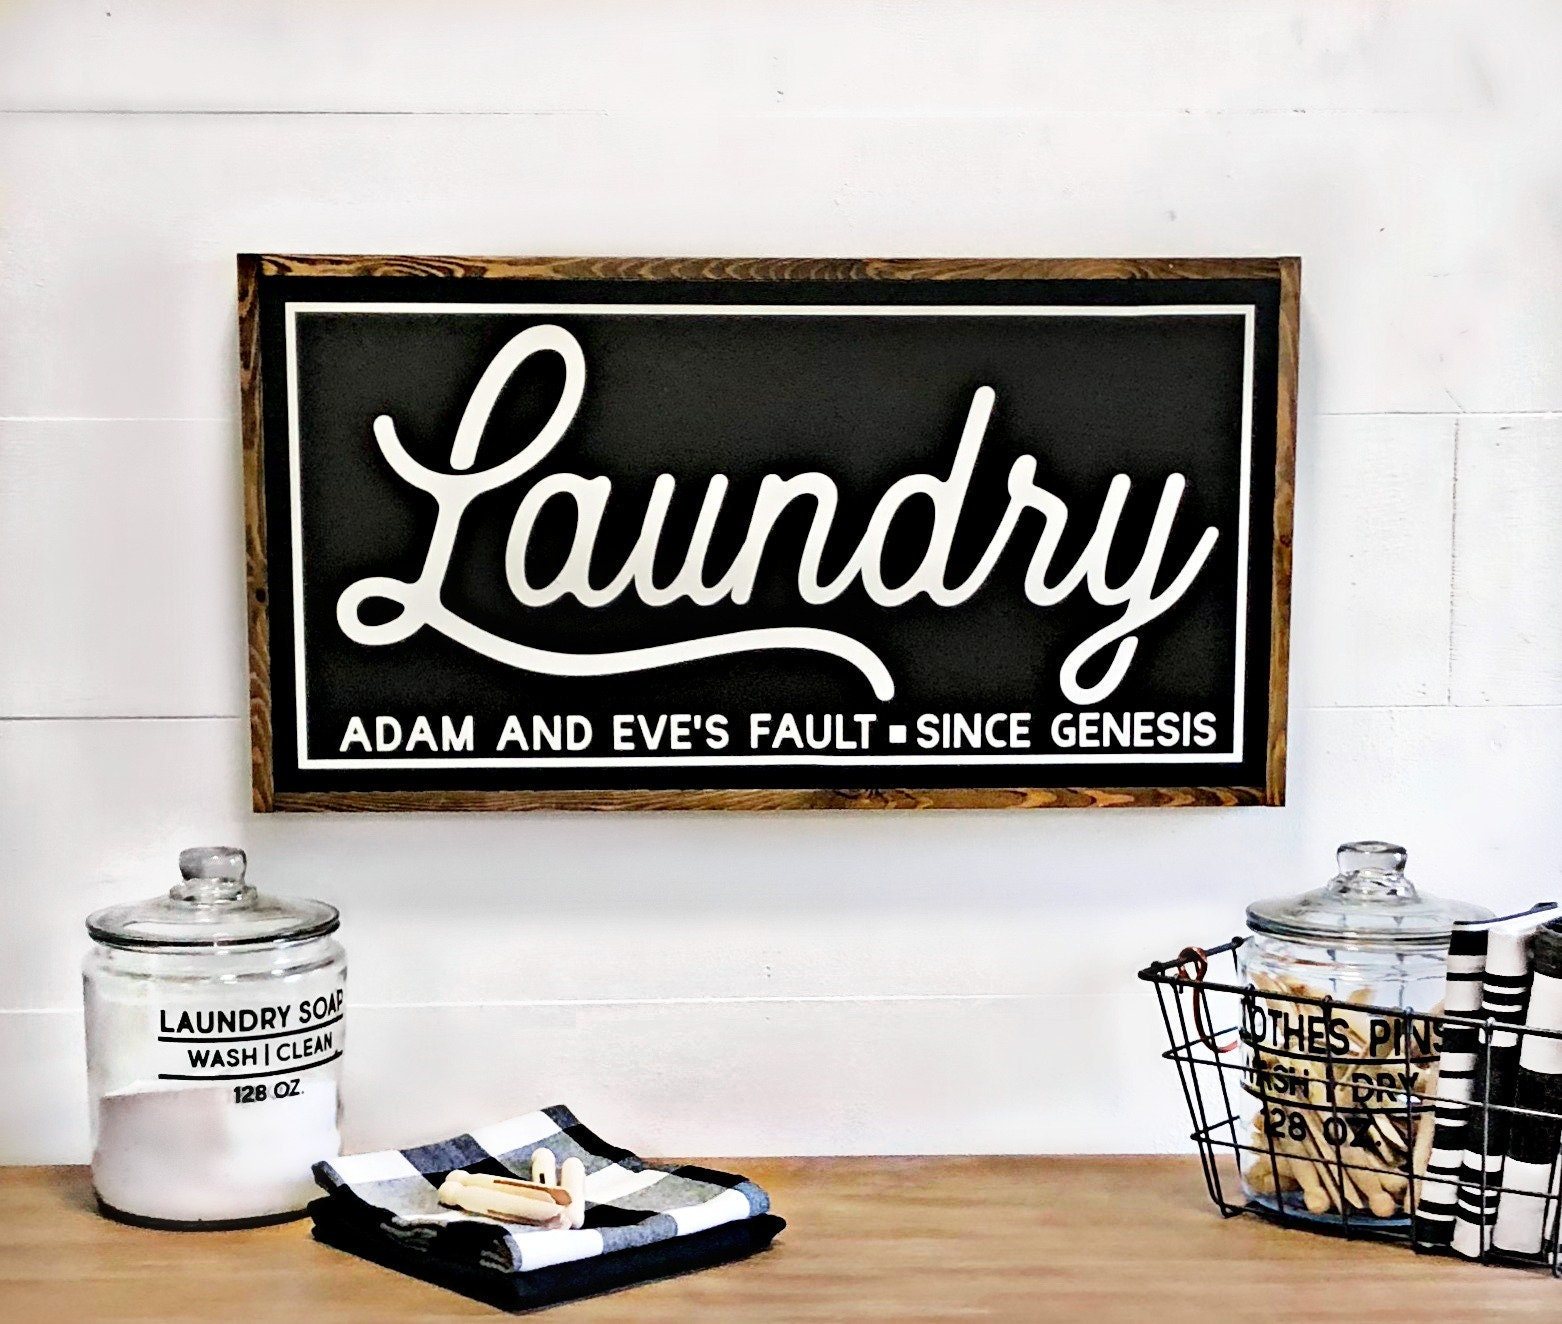 Laundry Room Decor Laundry Sign Farmhouse Laundry Sign Funny Laundry Room Decor Sign Farmhouse Sign Laundry Room Sign Farmhouse Decor